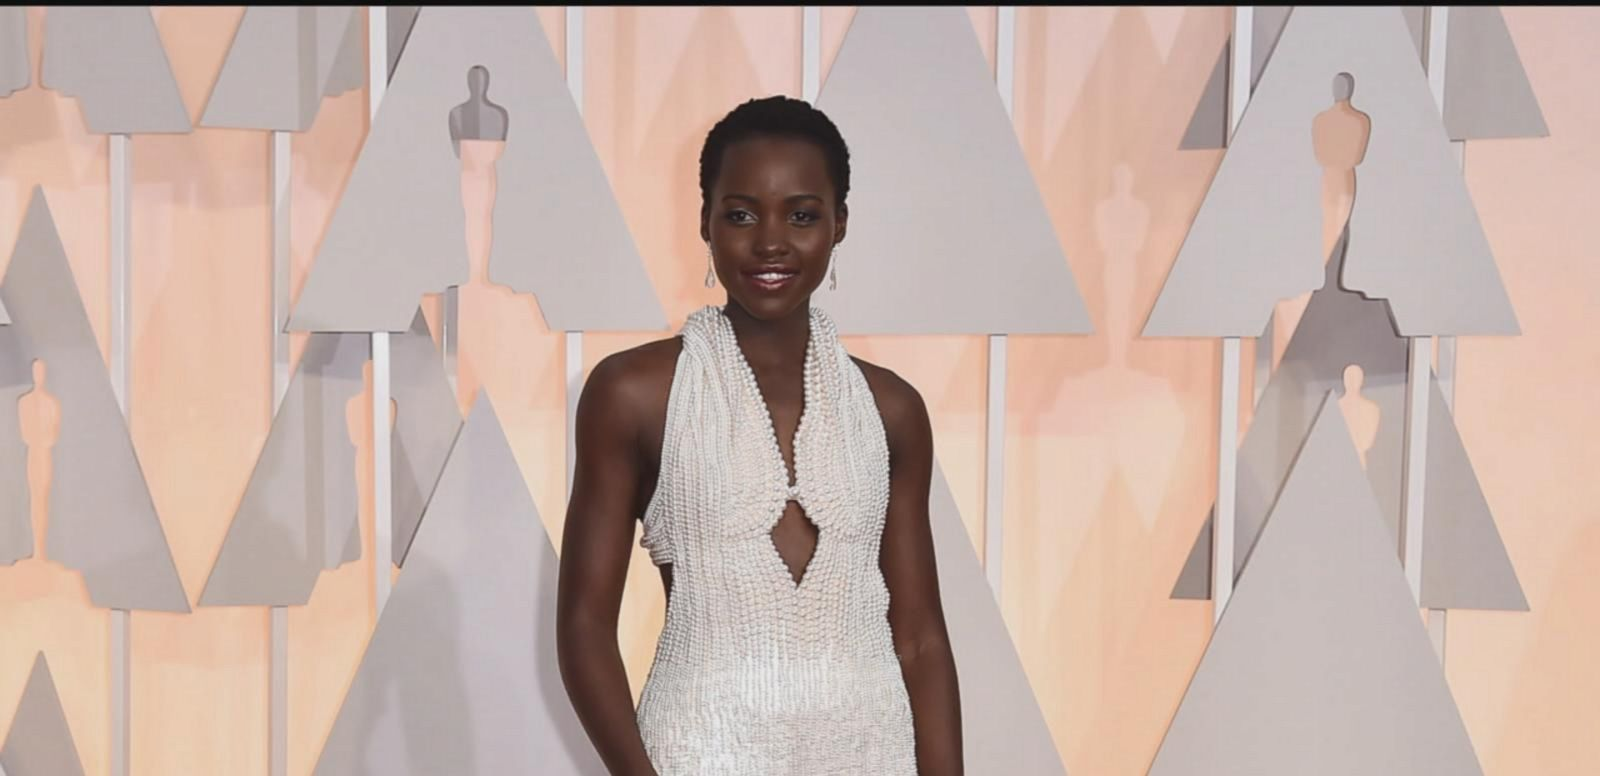 VIDEO: Index: Stolen Lupita Nyong'o Dress Found, But No Suspect Identified